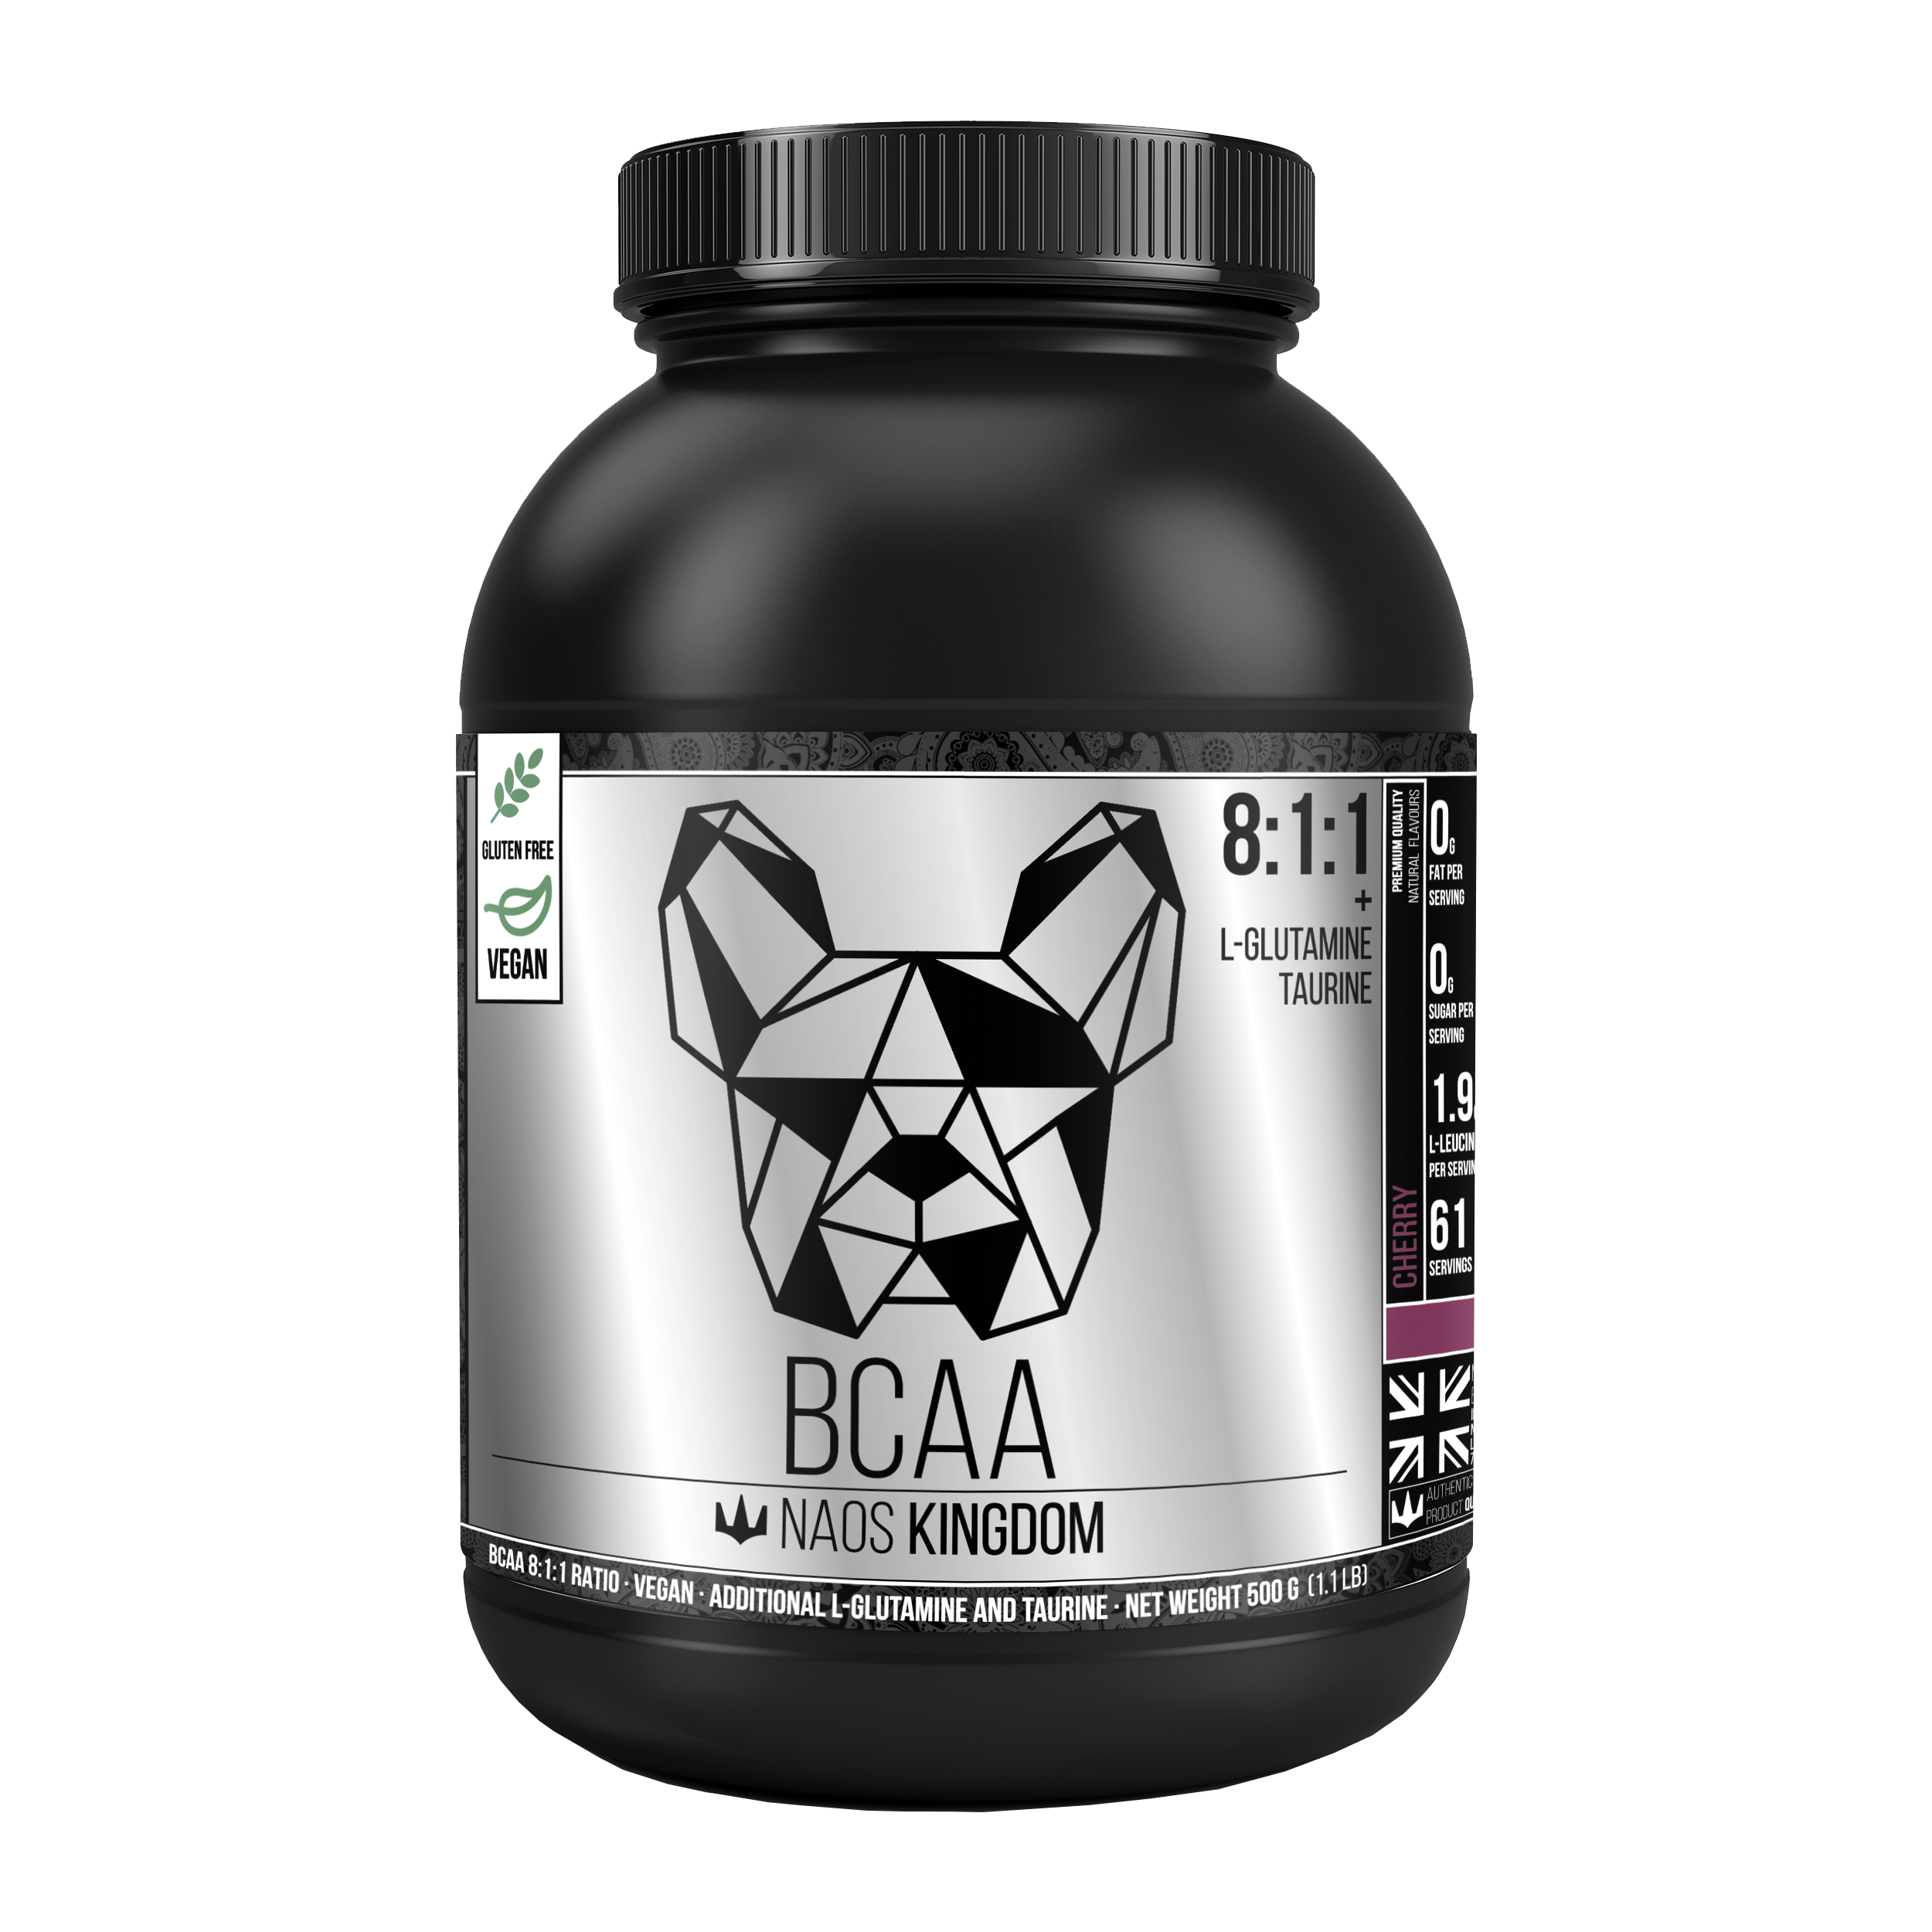 NAOS KINGDOM - White Bulldog BCAA